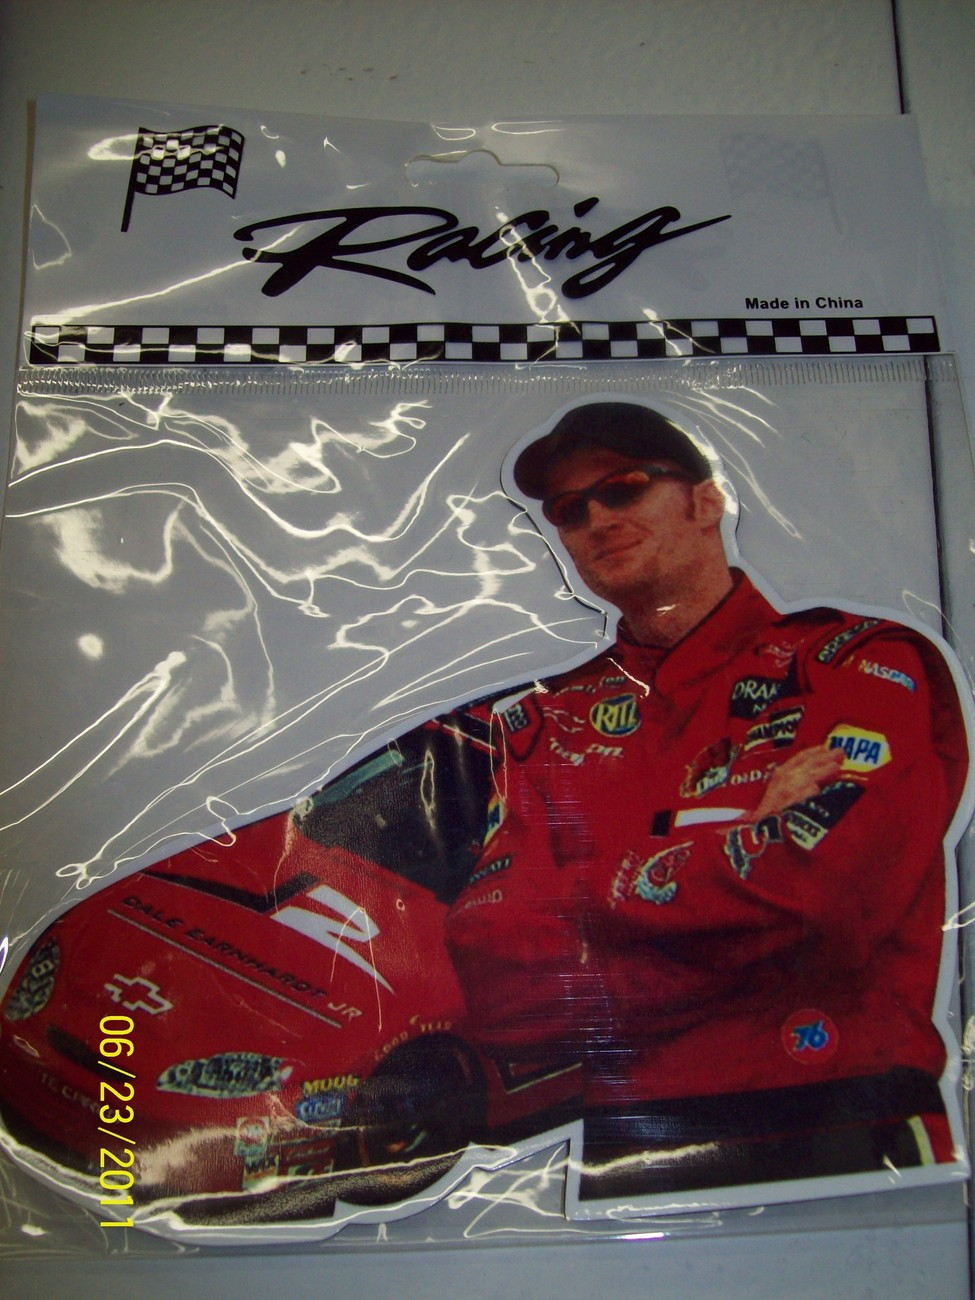 Dale Earnhardt and Dale Earnhardt, Jr Racing Magnets (2)